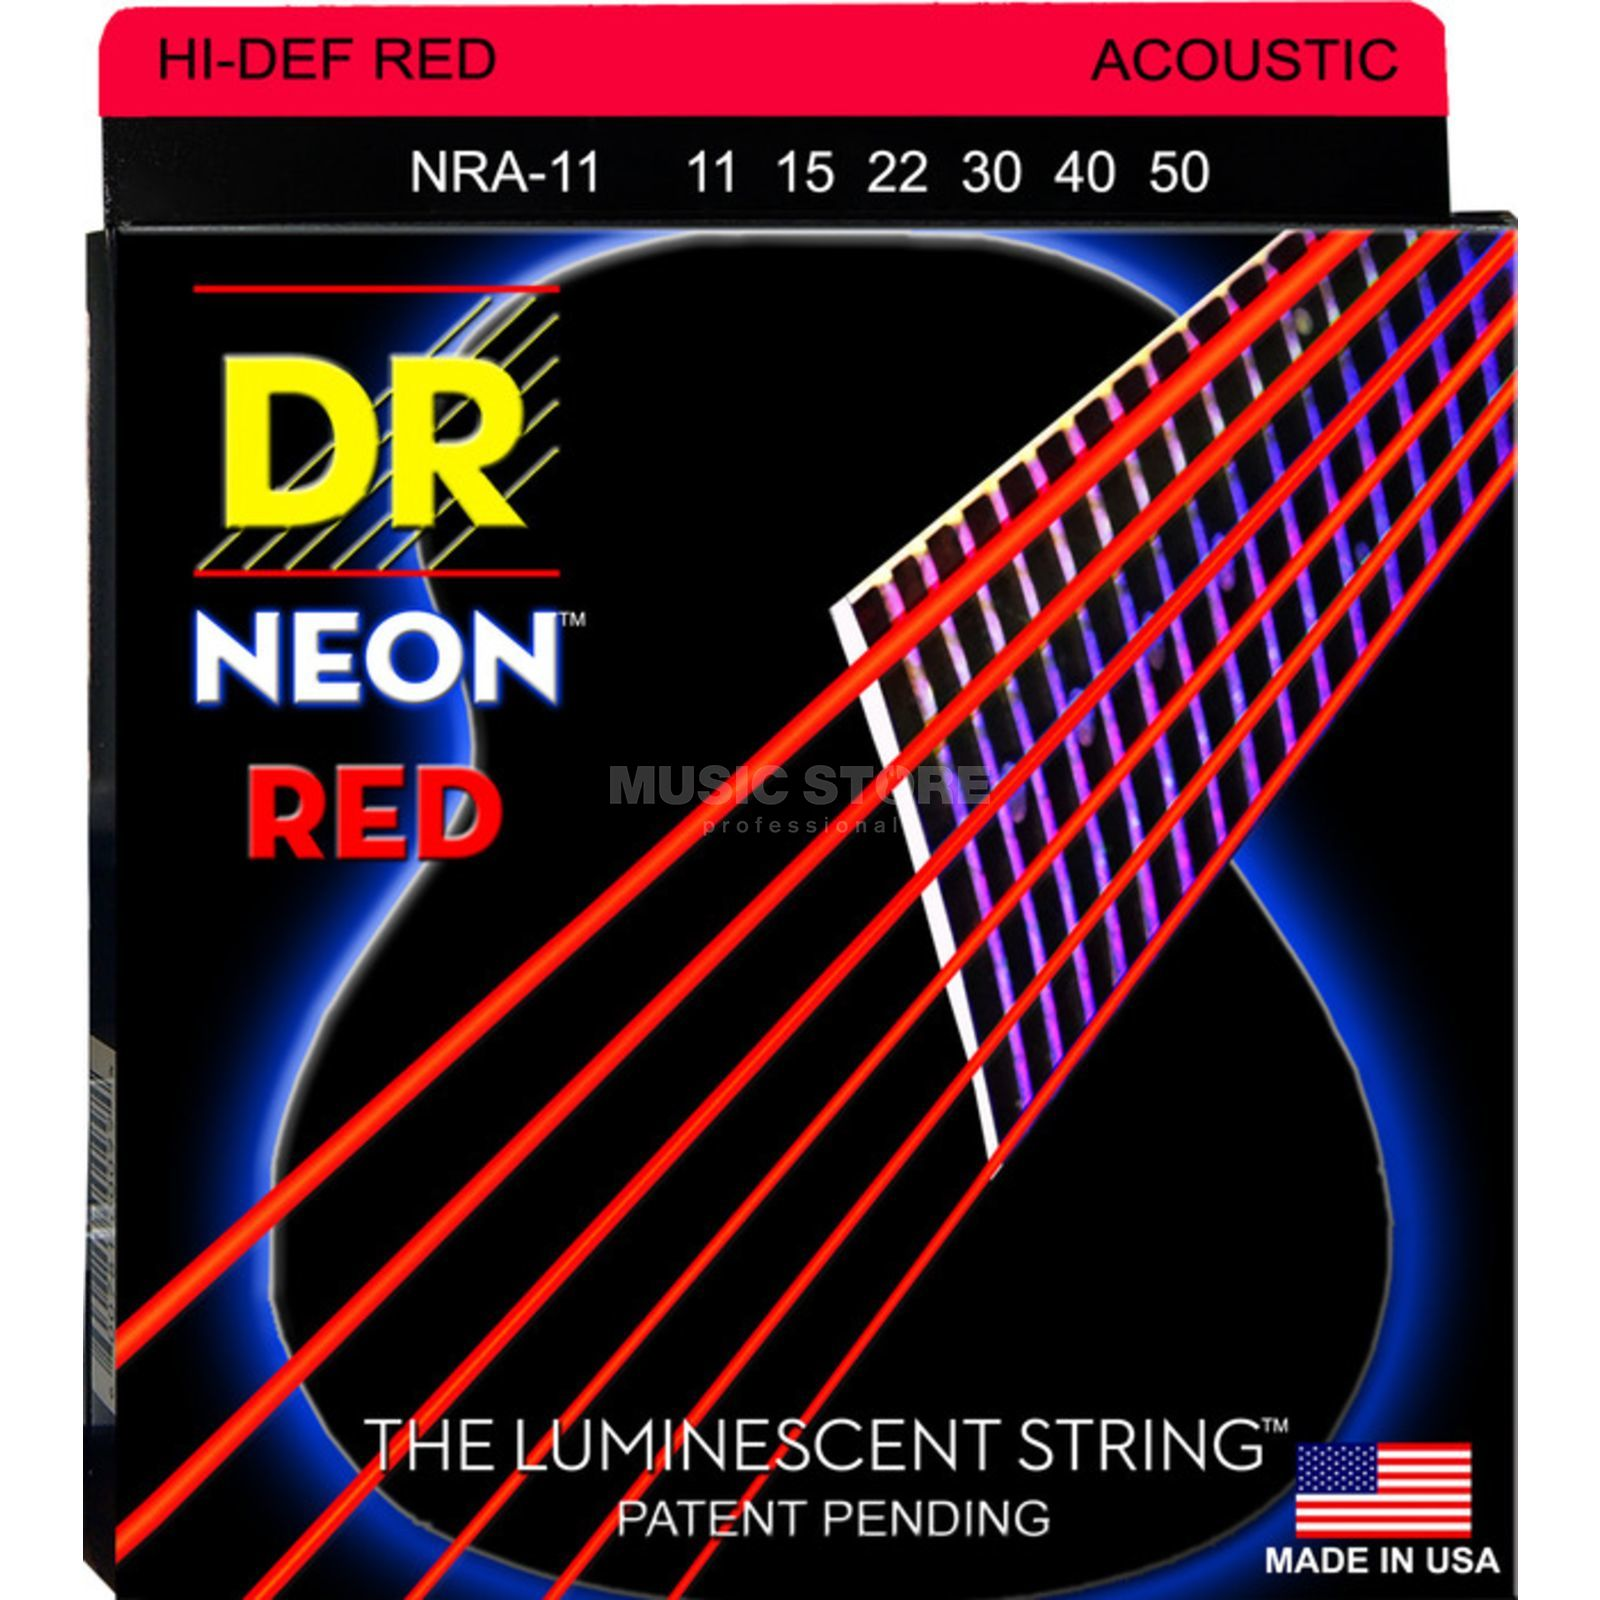 DR A-Guitar Strings 11-50 Hi-Def Red NRA-11 Produktbillede